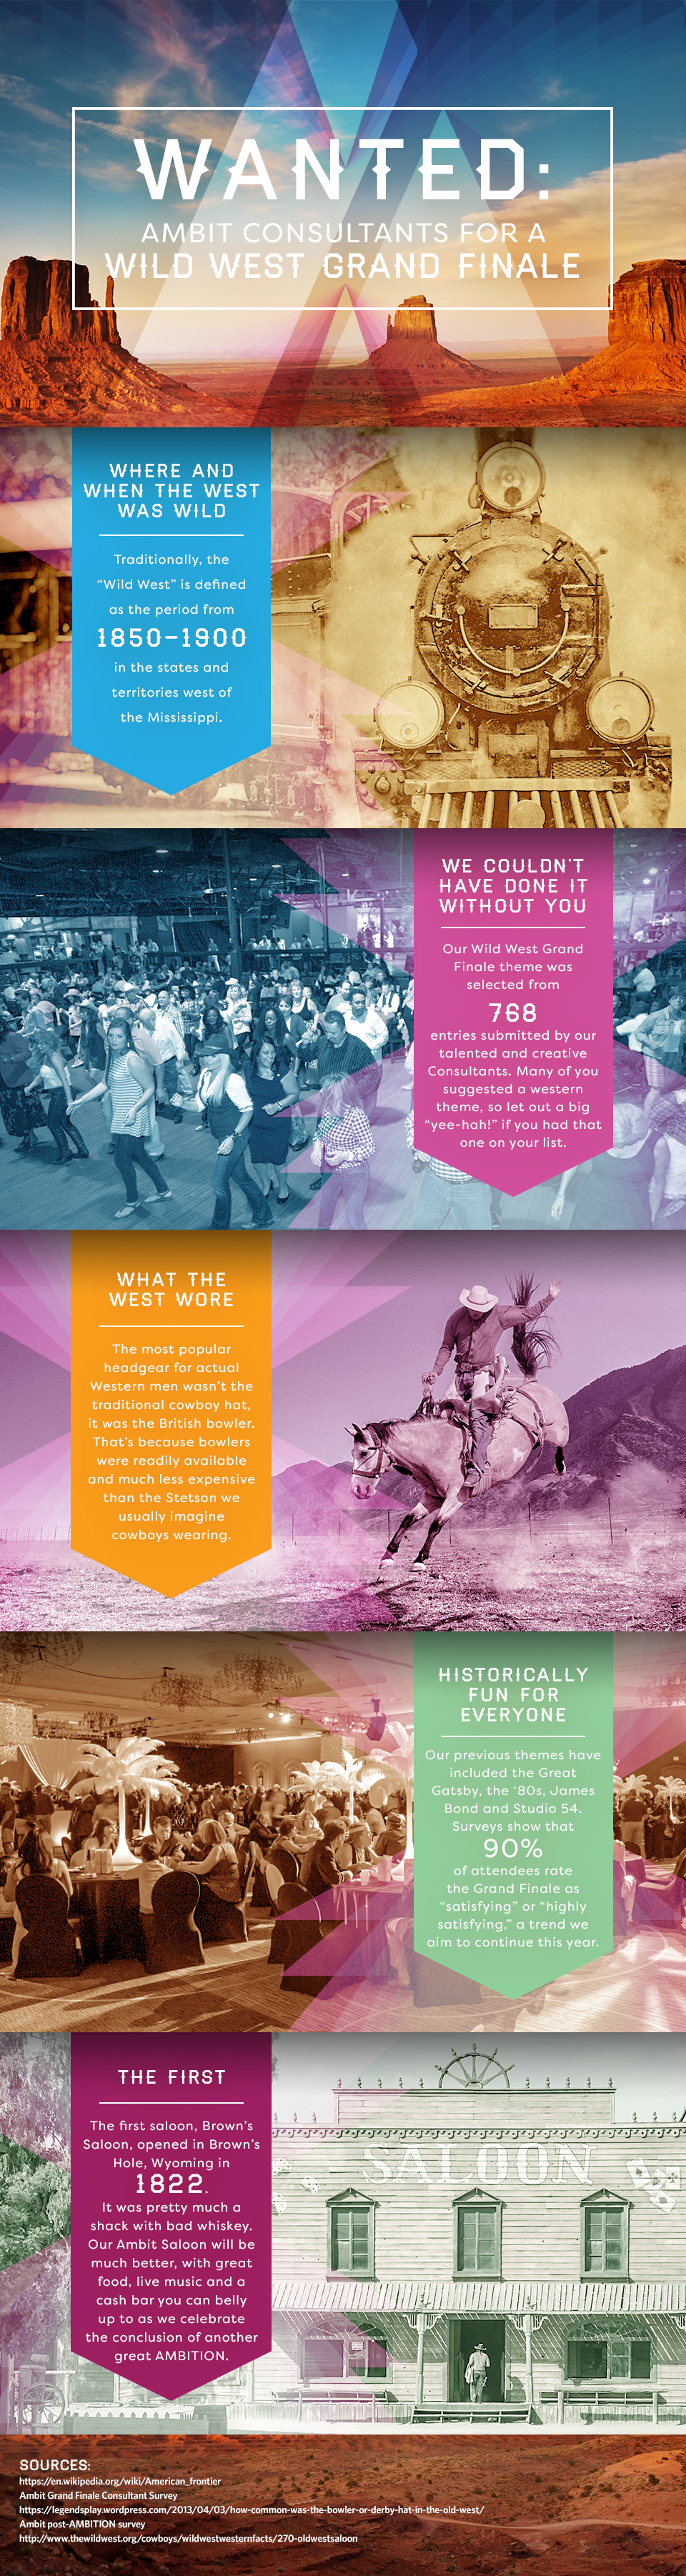 Infographic: Wanted: Ambit Consultants for a Wild West Grand Finale